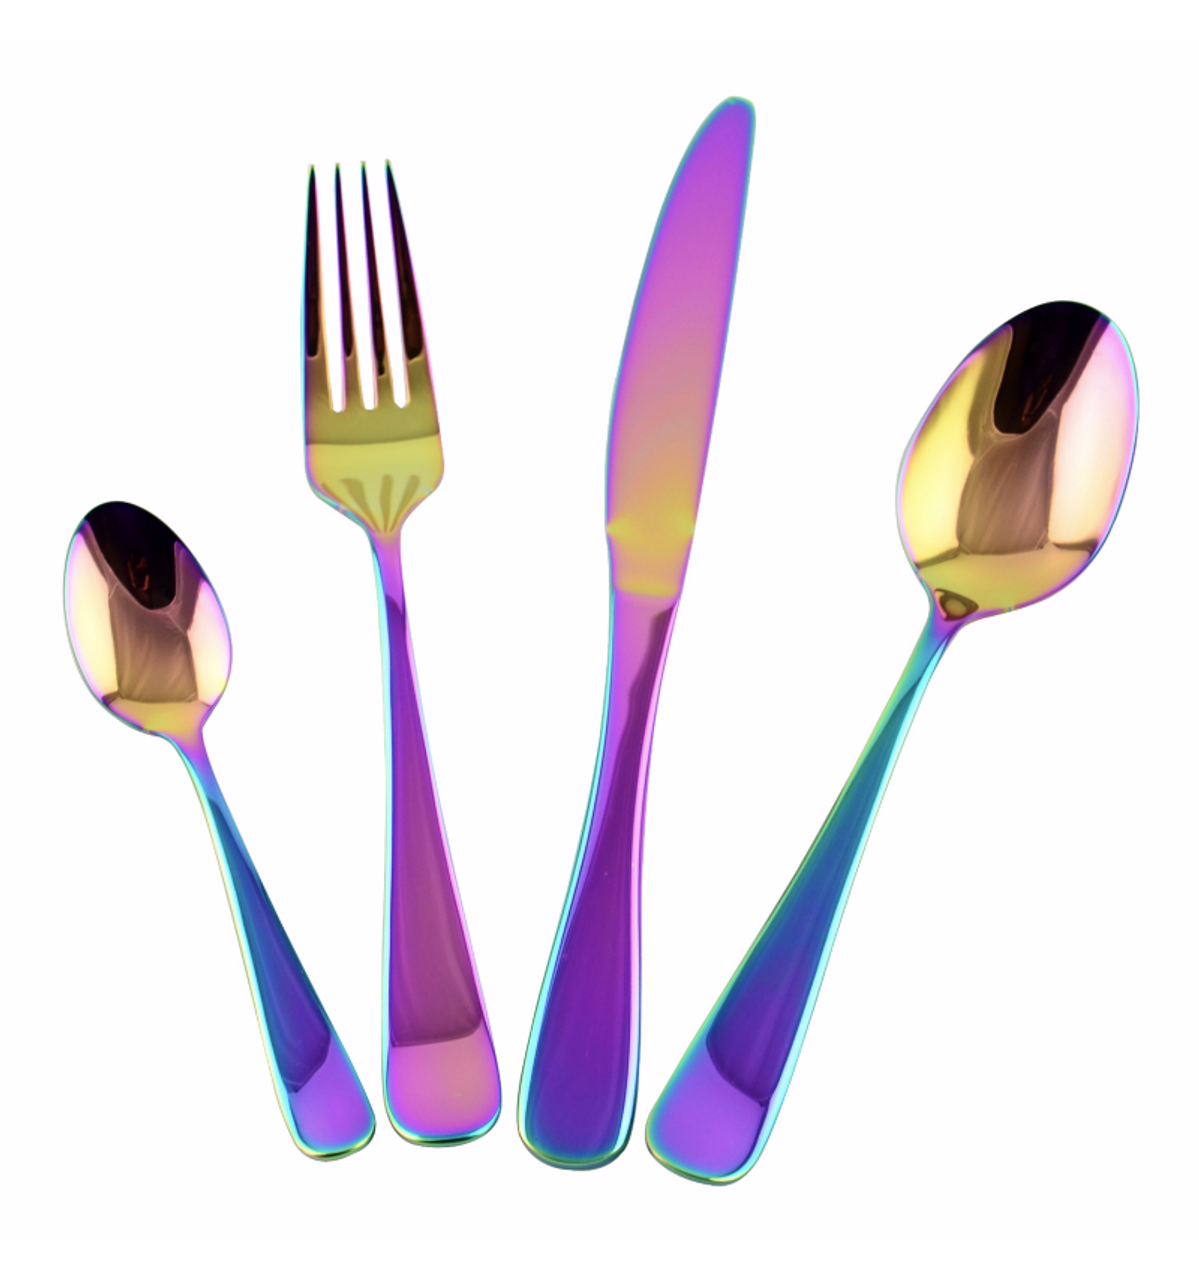 CUTLERY SET STUNNING LOOK 8//16 PIECE HOLOGRAPHIC